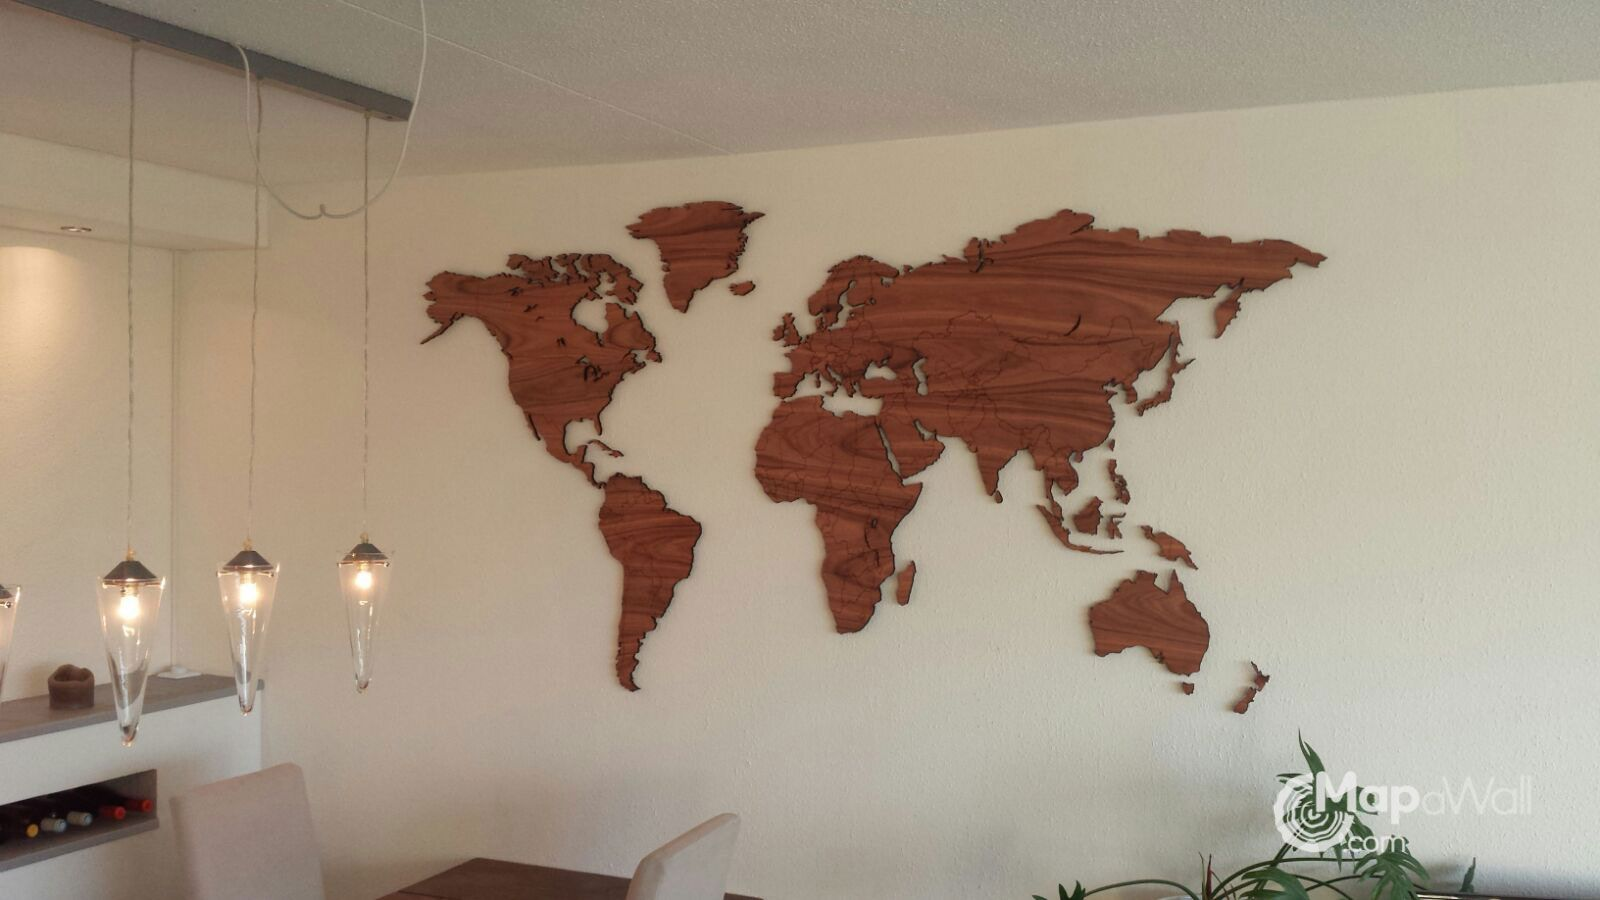 Image result for cnc cad drawing on world map wall design image result for cnc cad drawing on world map gumiabroncs Images